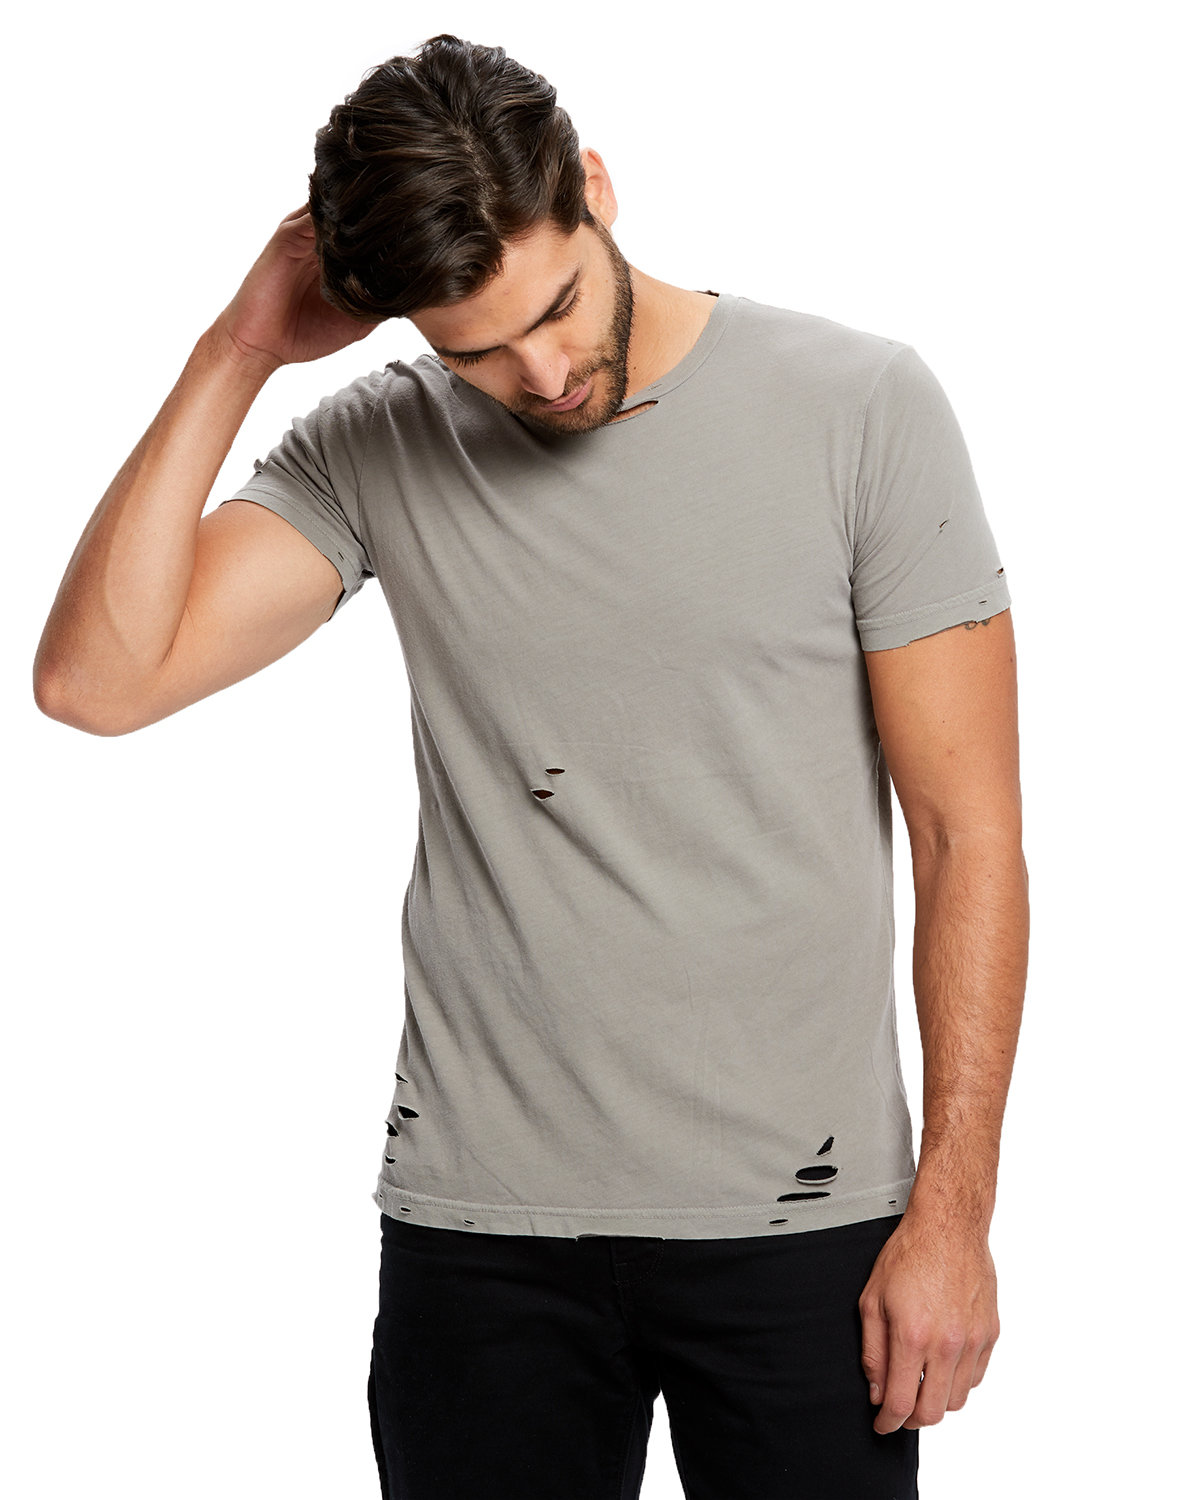 US Blanks Unisex Pigment-Dyed Destroyed T-Shirt PIGMENT CEMENT